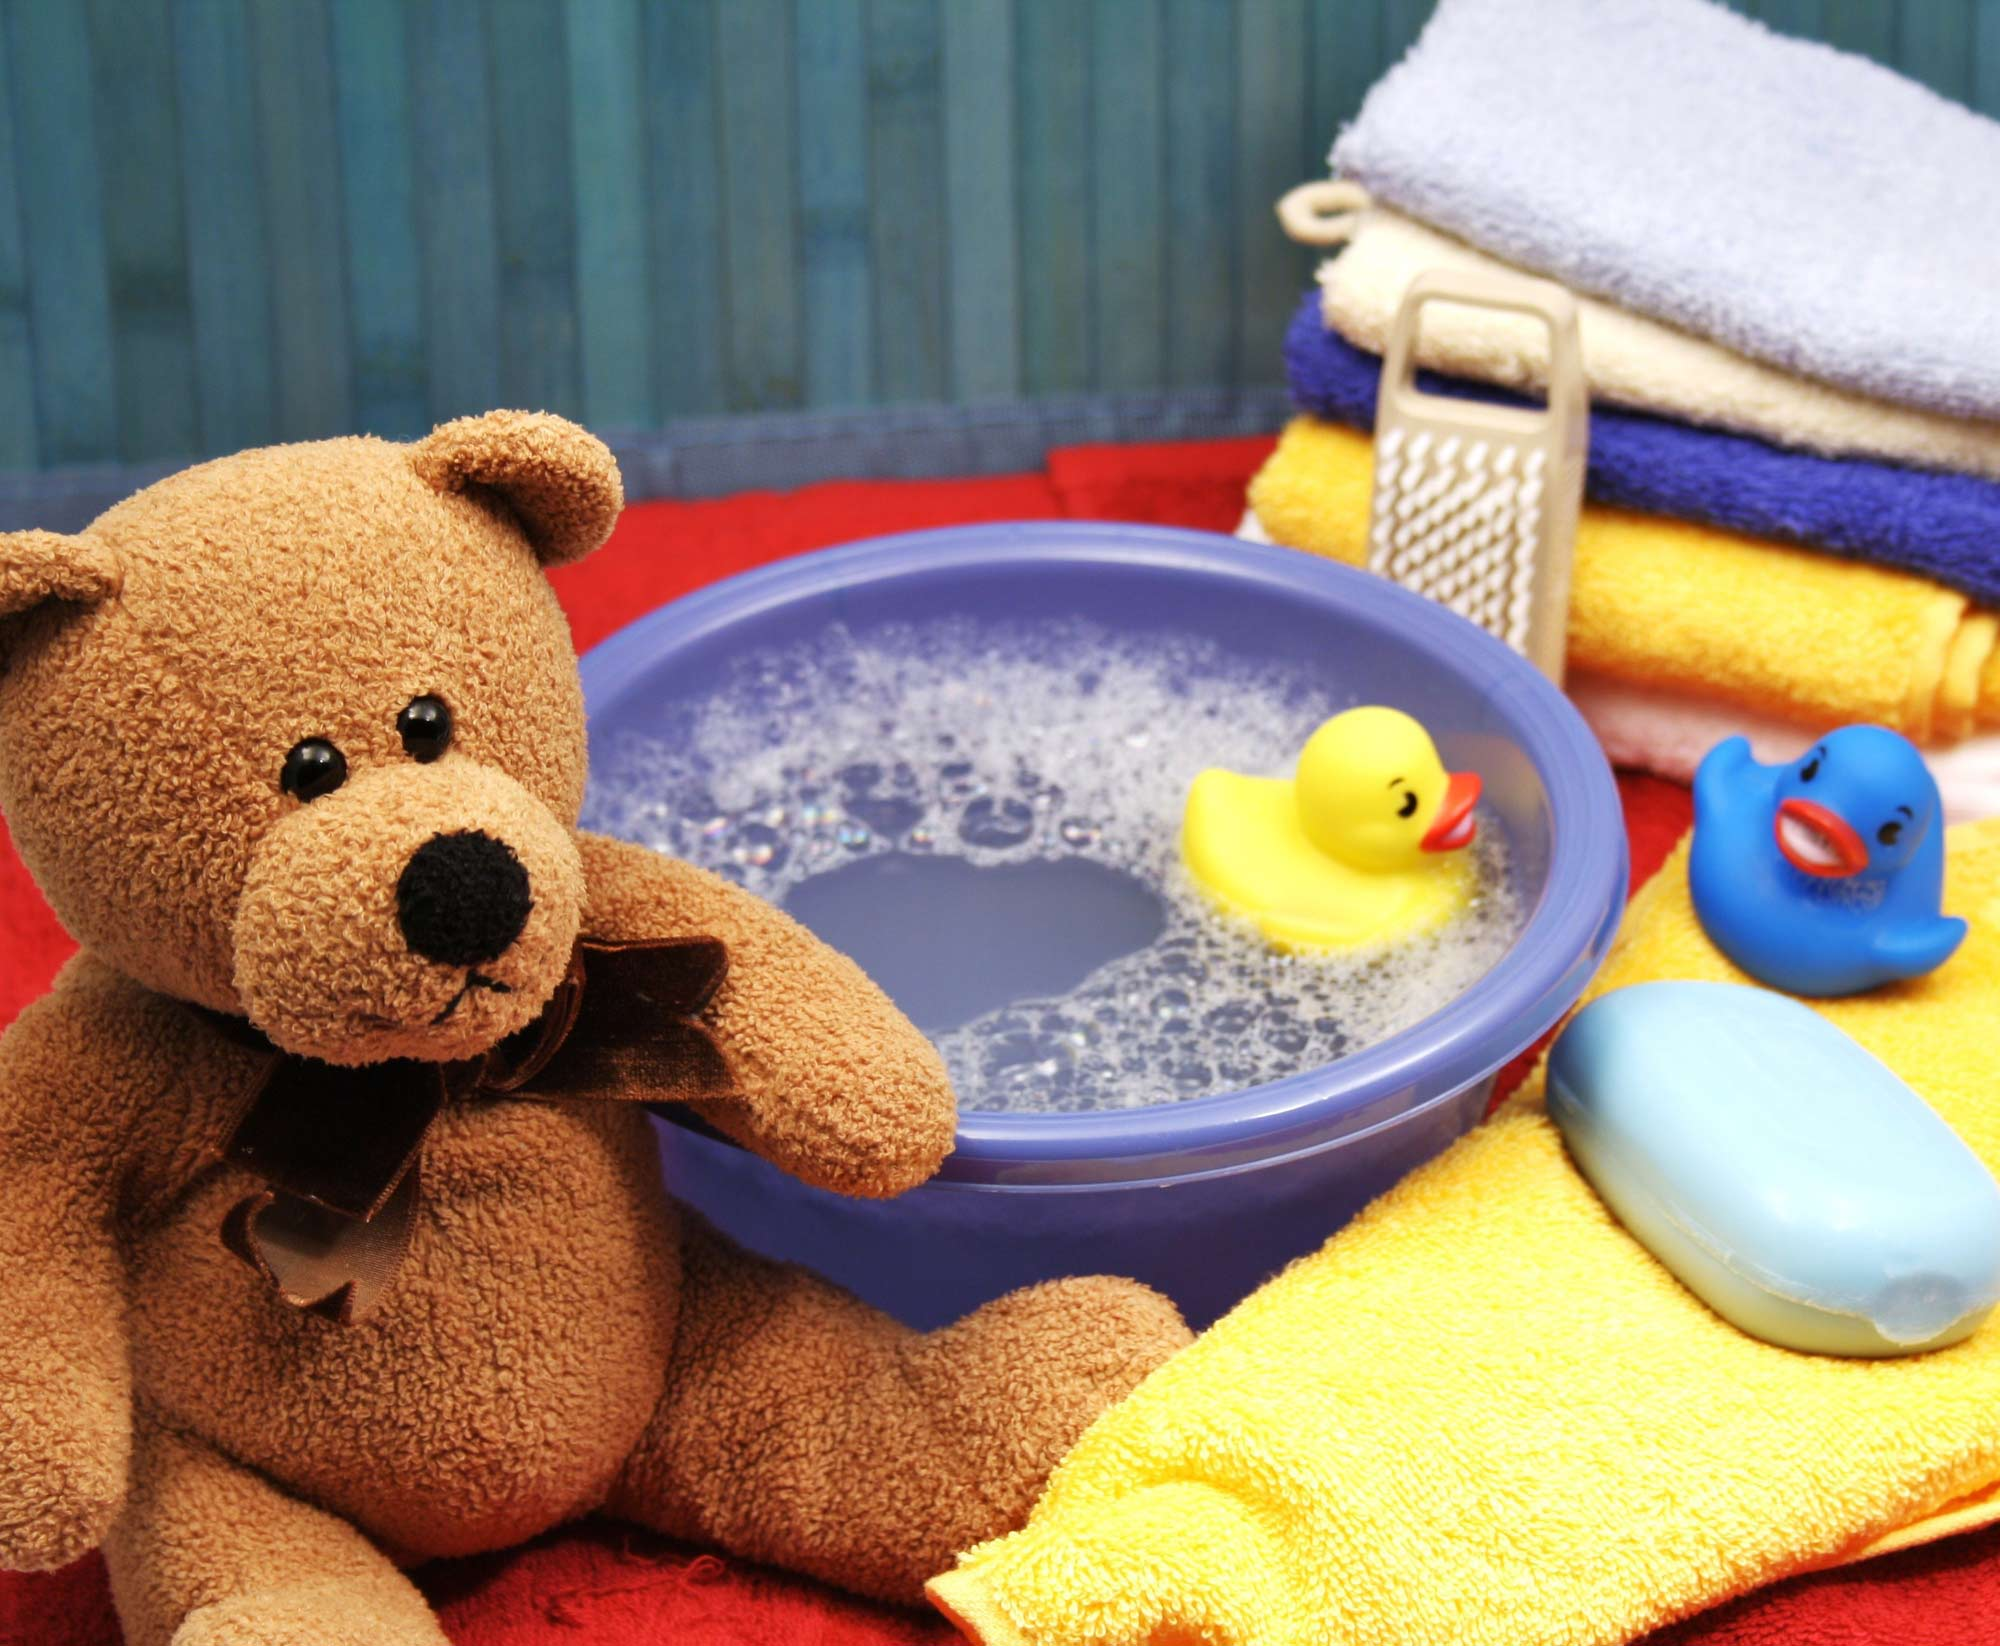 The Complete Guide to Finding Non-Toxic Bath Toys for Toddlers